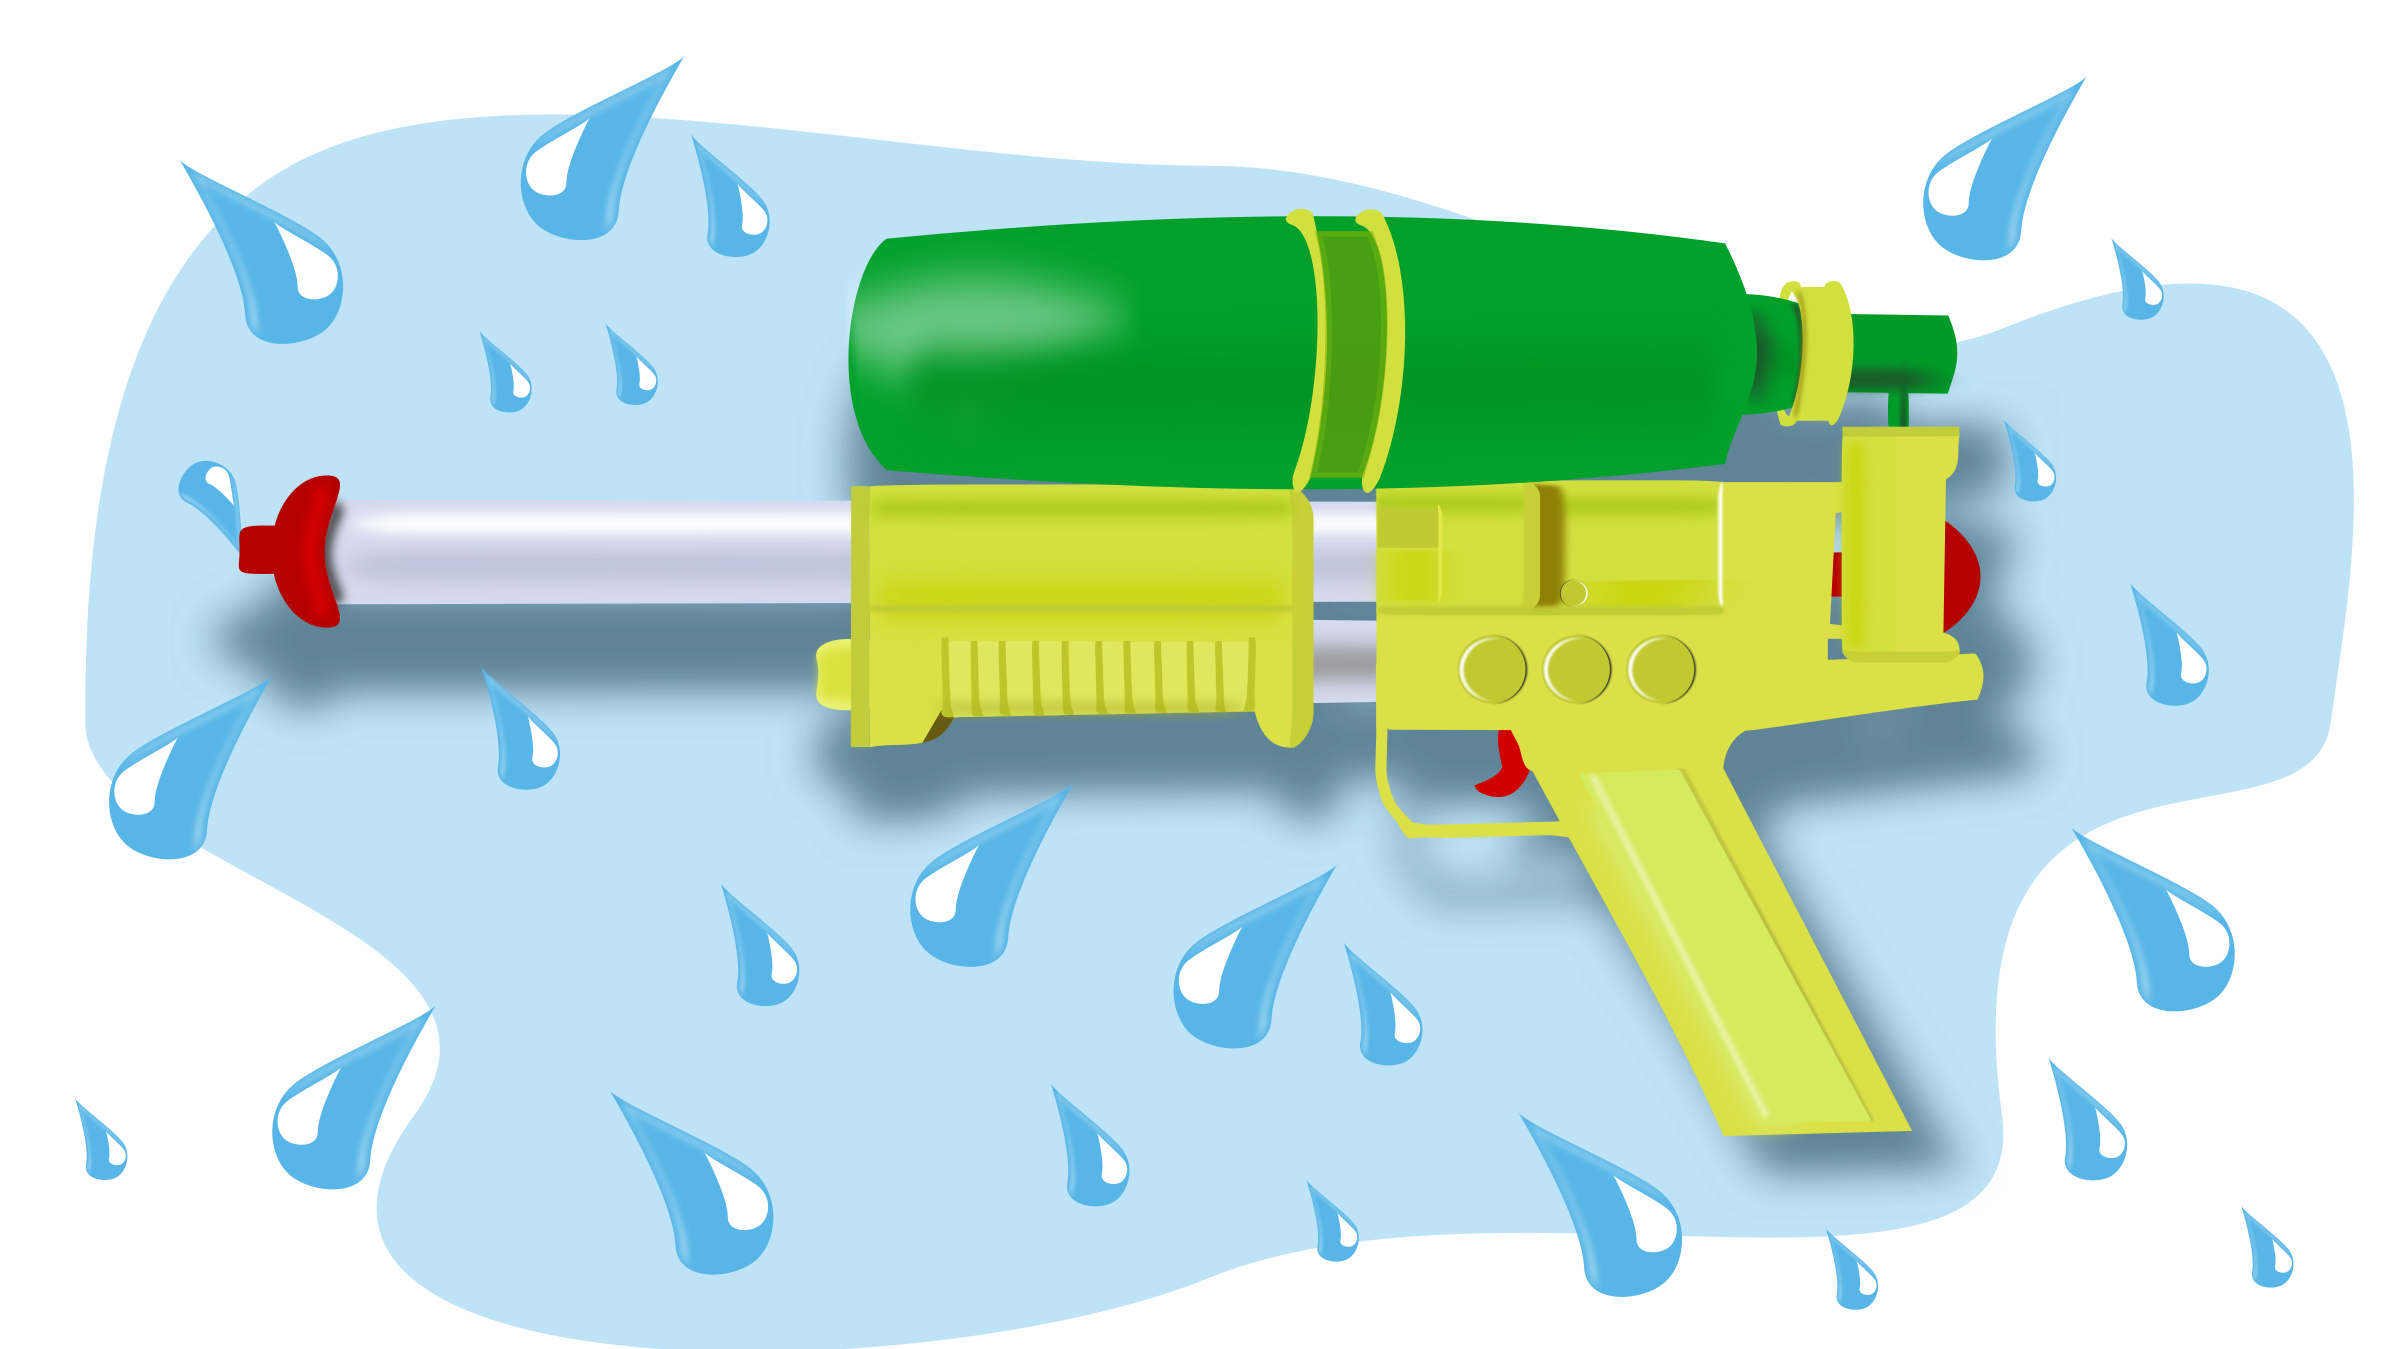 Splash water gun by inkscapeforum.it